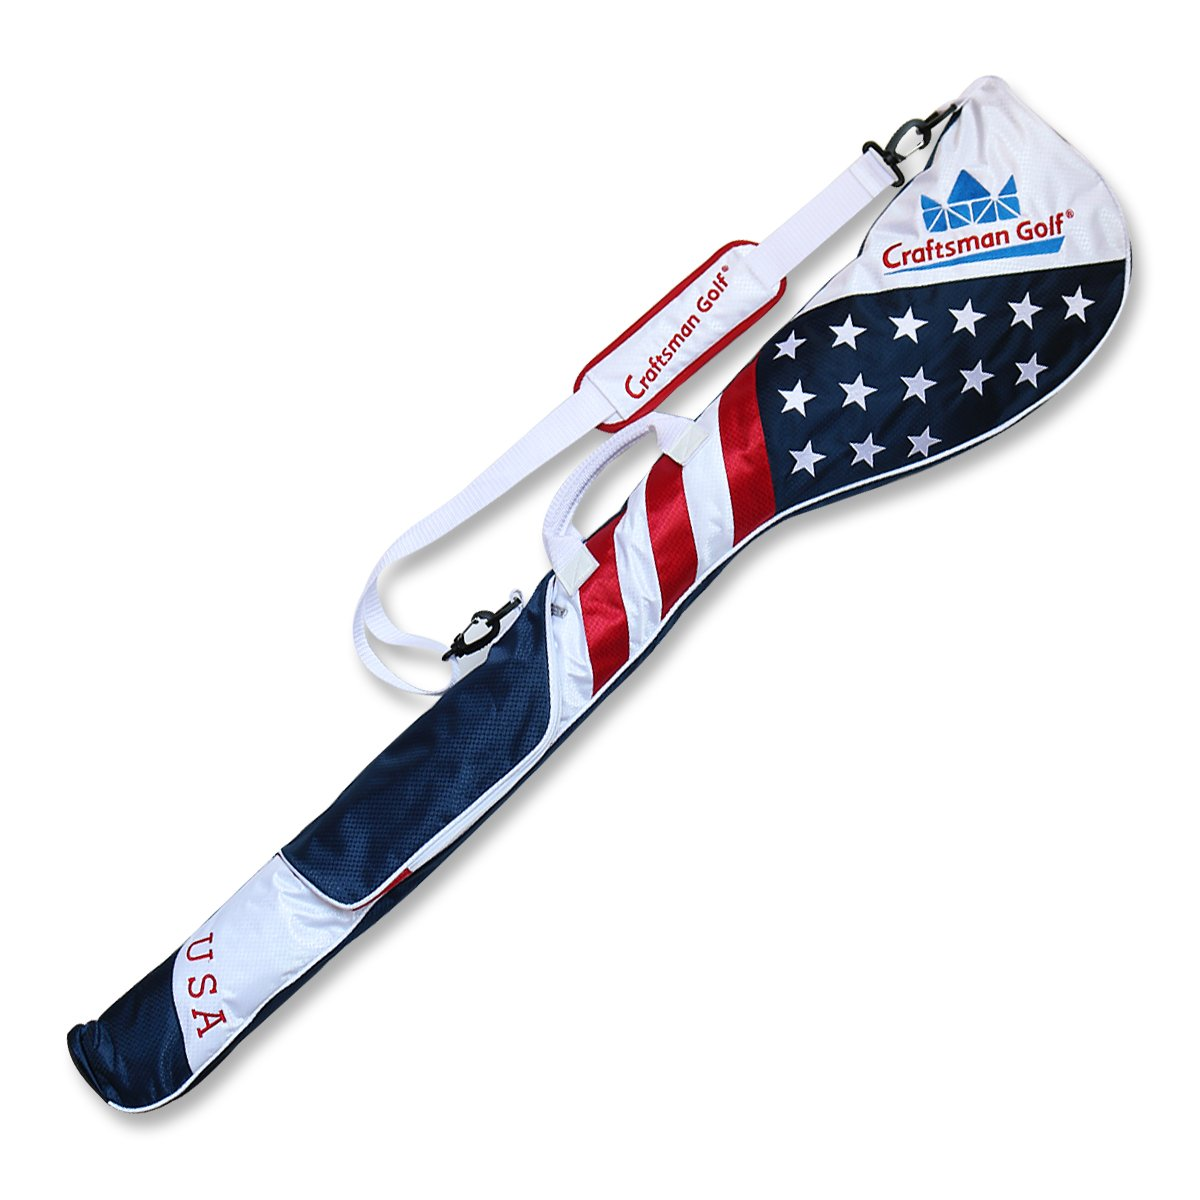 Craftsman Golf Stars and Stripes American USA US Flag Club Case Sunday Bag Red White Blue For 6-7 Clubs 49''